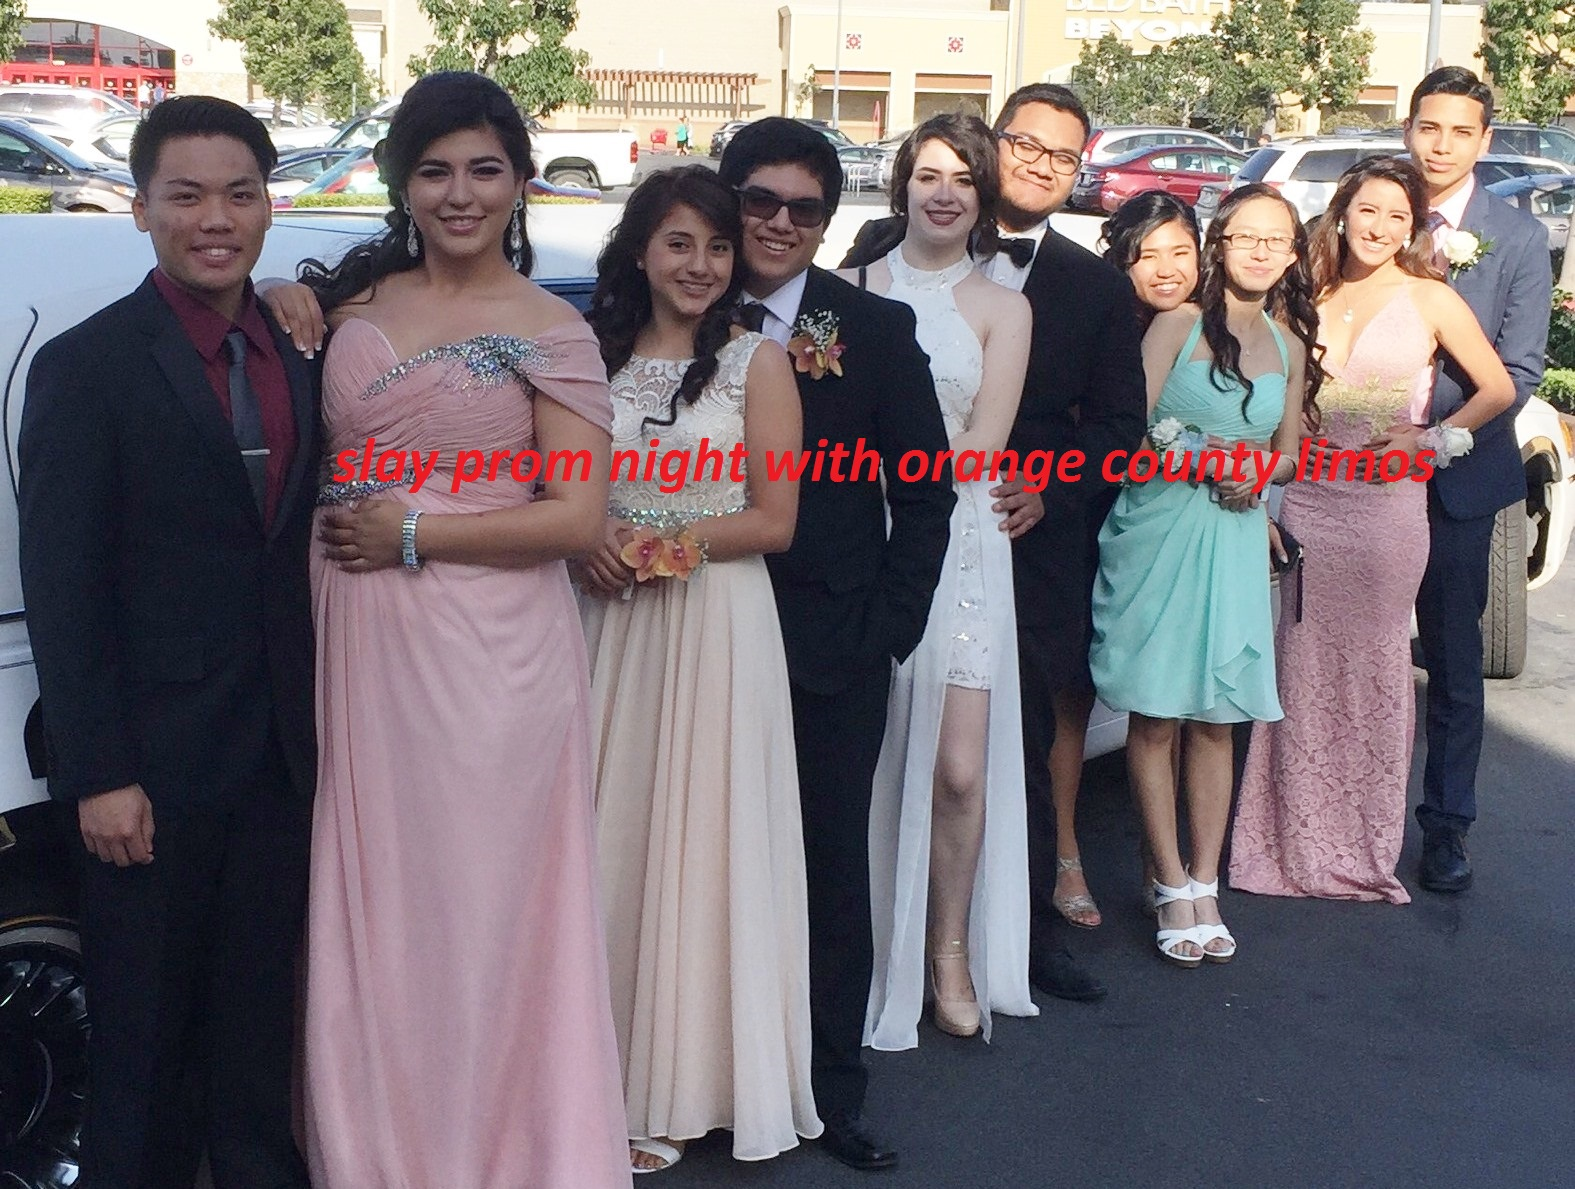 Limo Prom Orange County Limo Services Excel Fleet Limo Prom Limousine